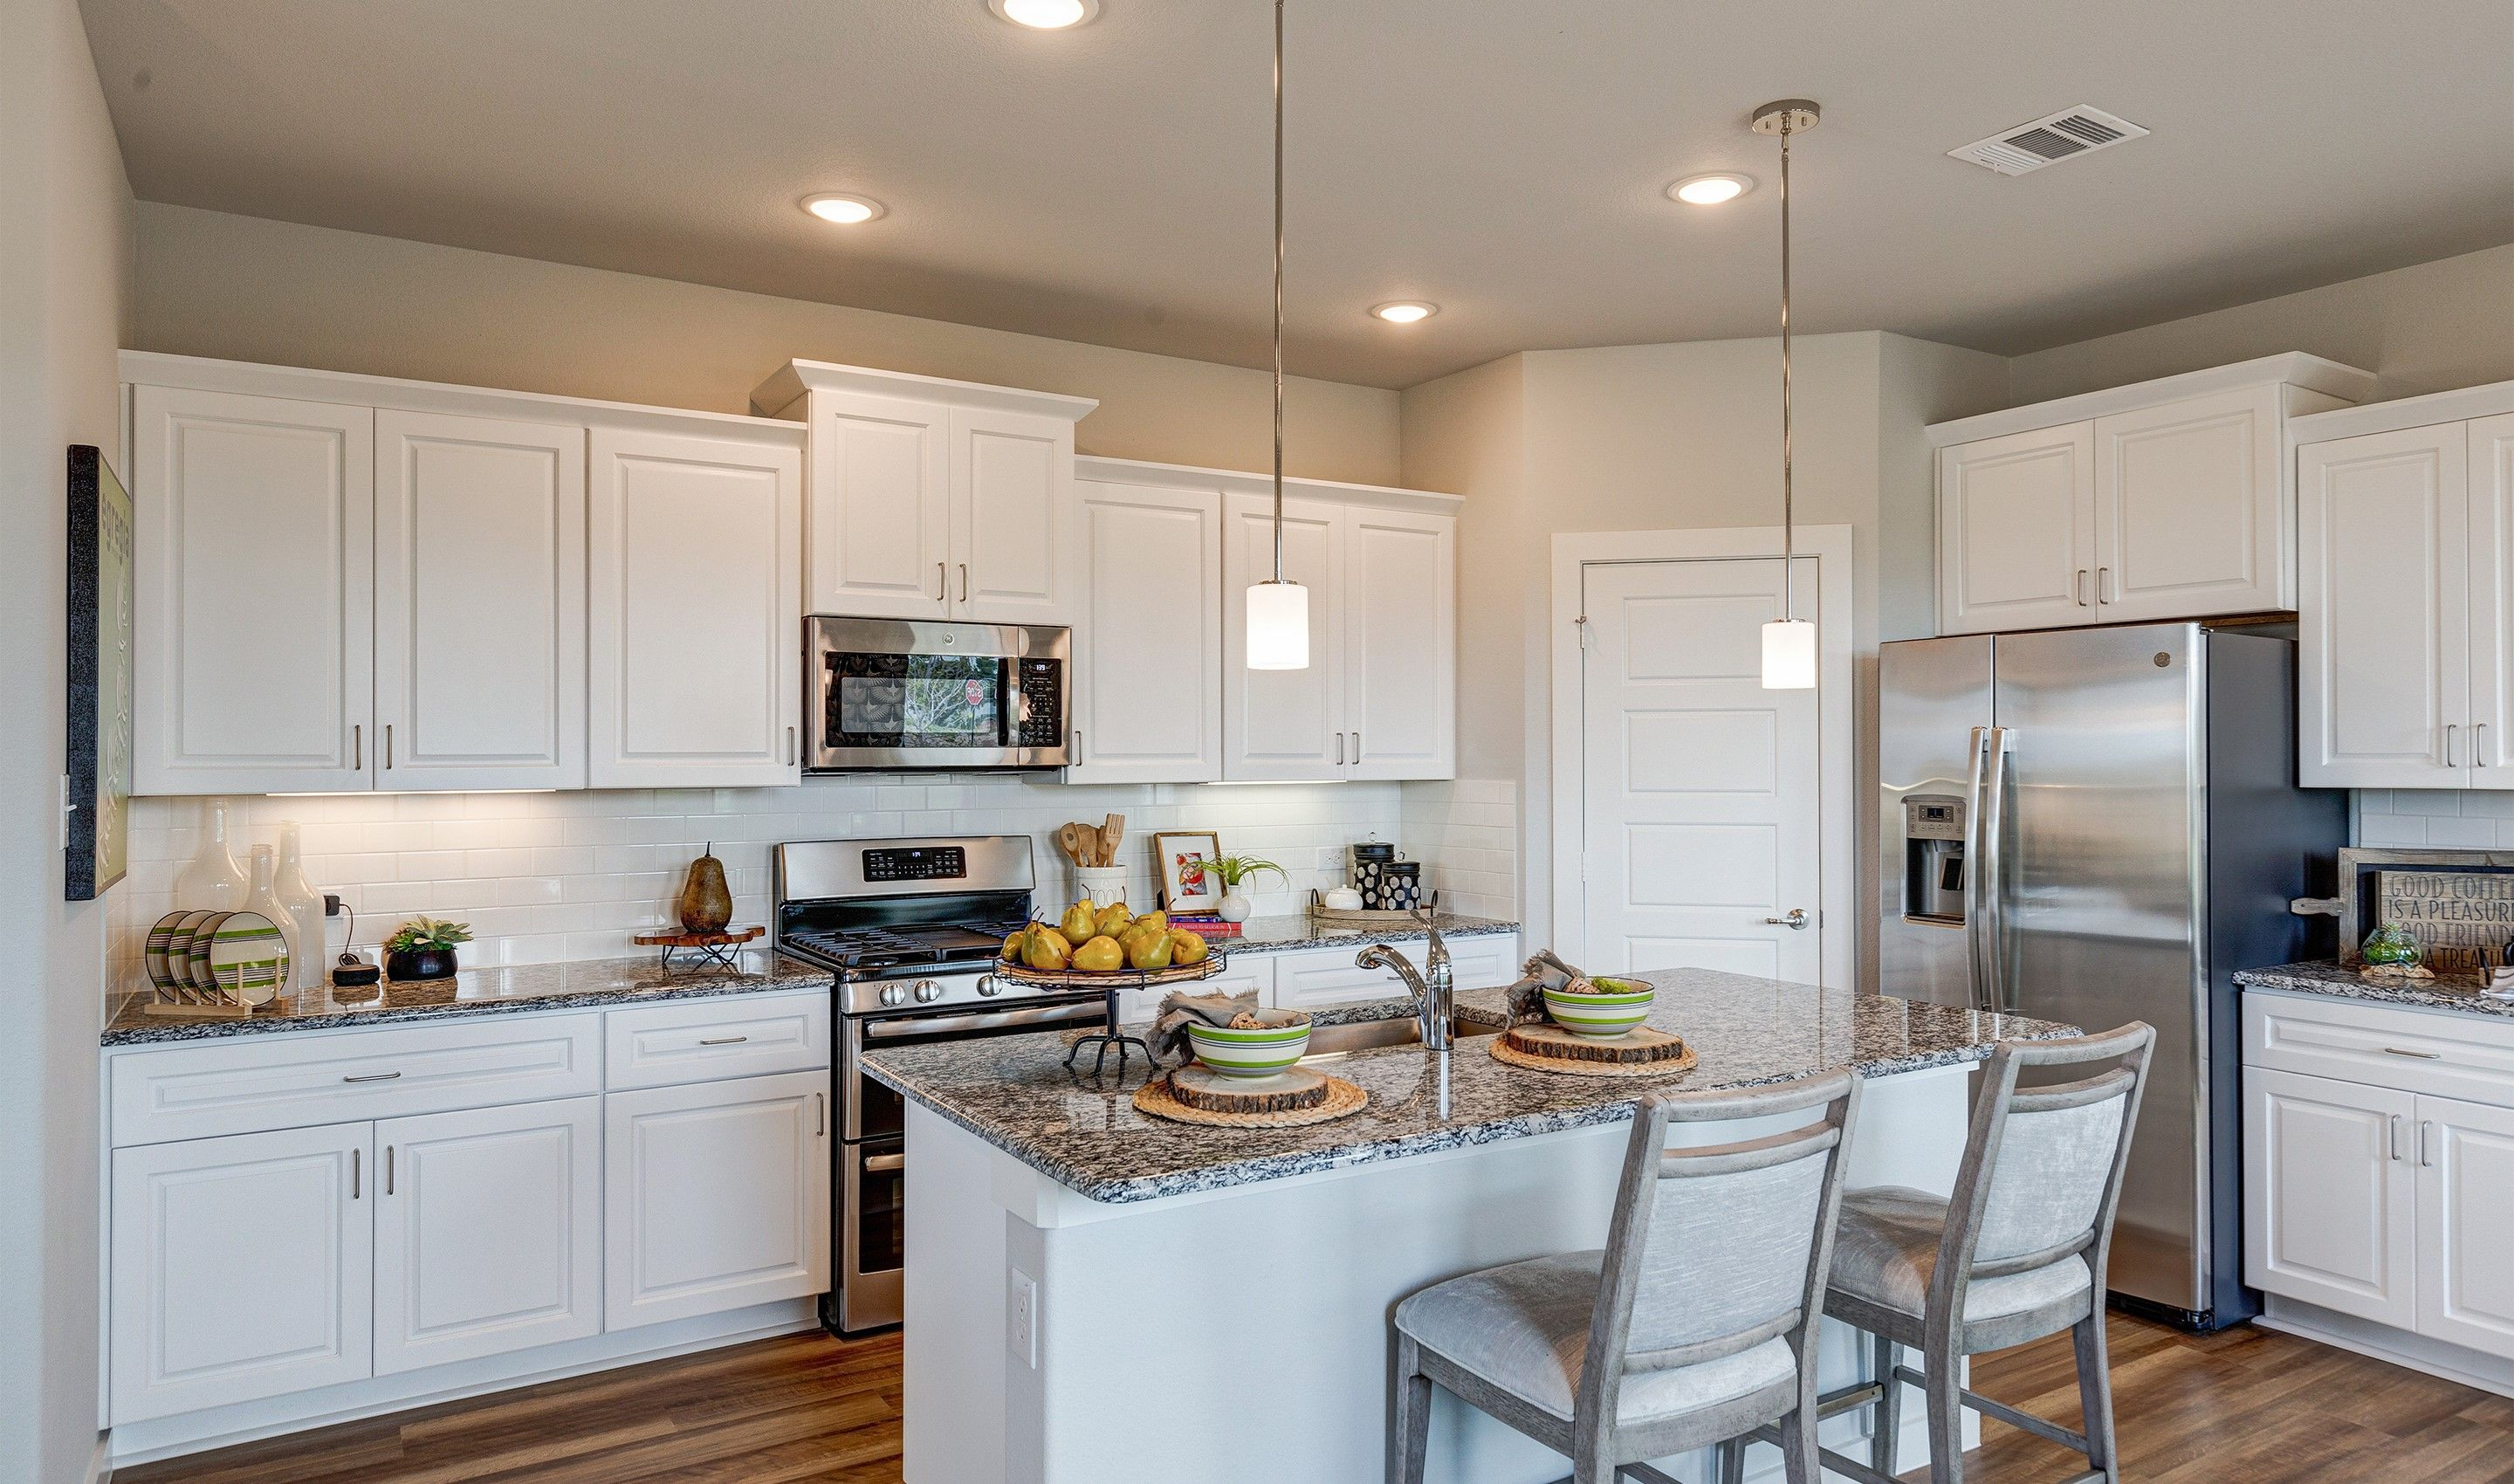 Kitchen featured in the Dover II - 3 Car By K. Hovnanian® Homes in Dallas, TX